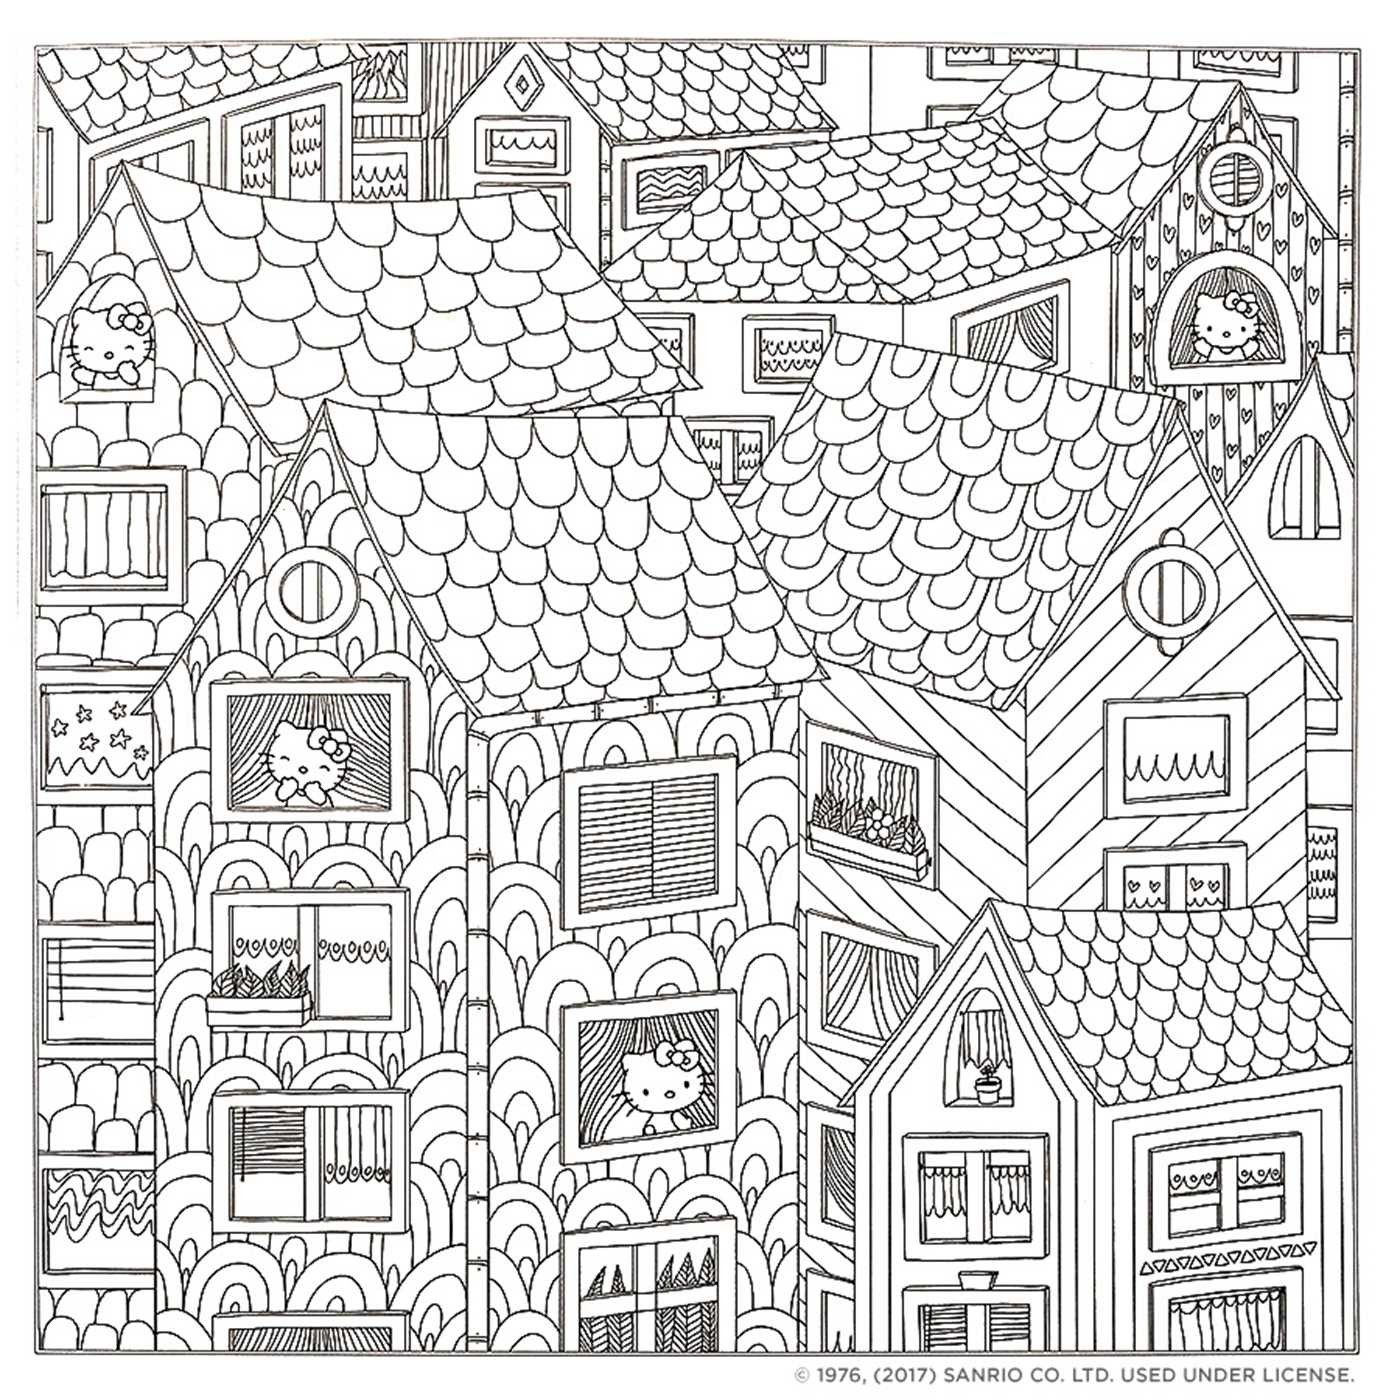 Hello Kitty Amp Friends Coloring Book Hello Kitty Background Hello Kitty Border Hello Kitty C Cat Coloring Book Kitty Coloring Hello Kitty Colouring Pages